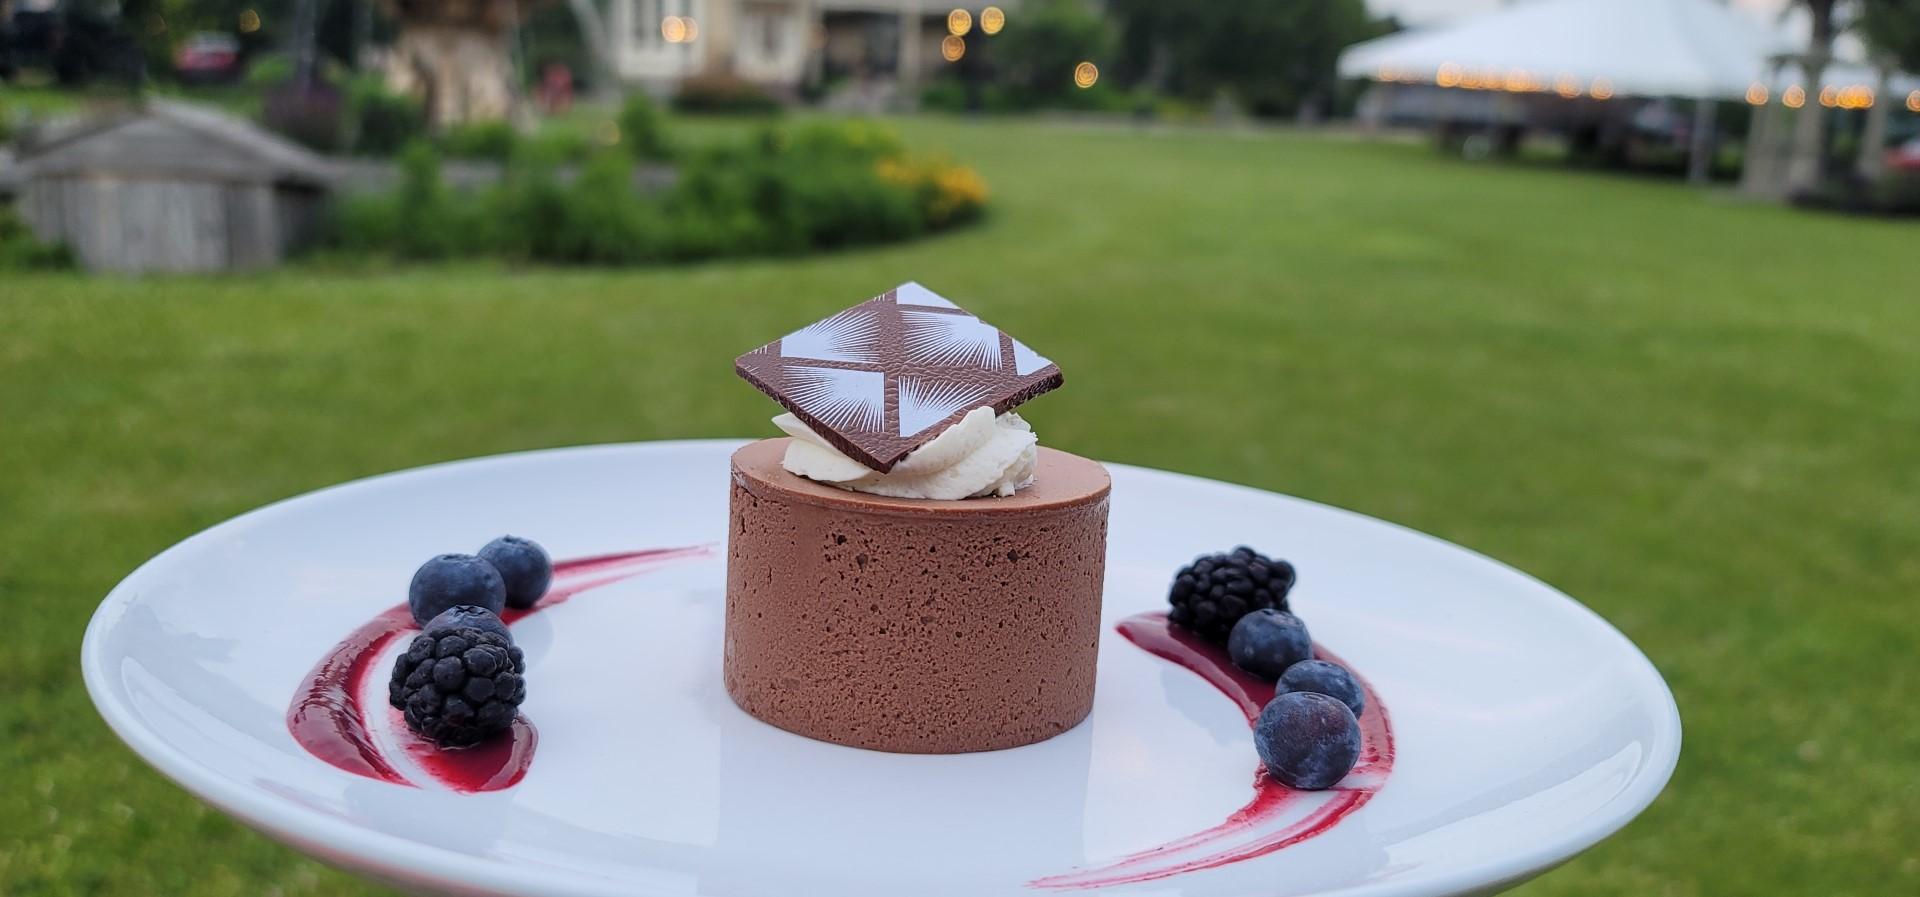 Chocolate torte on white plate with garnish and gardens in background